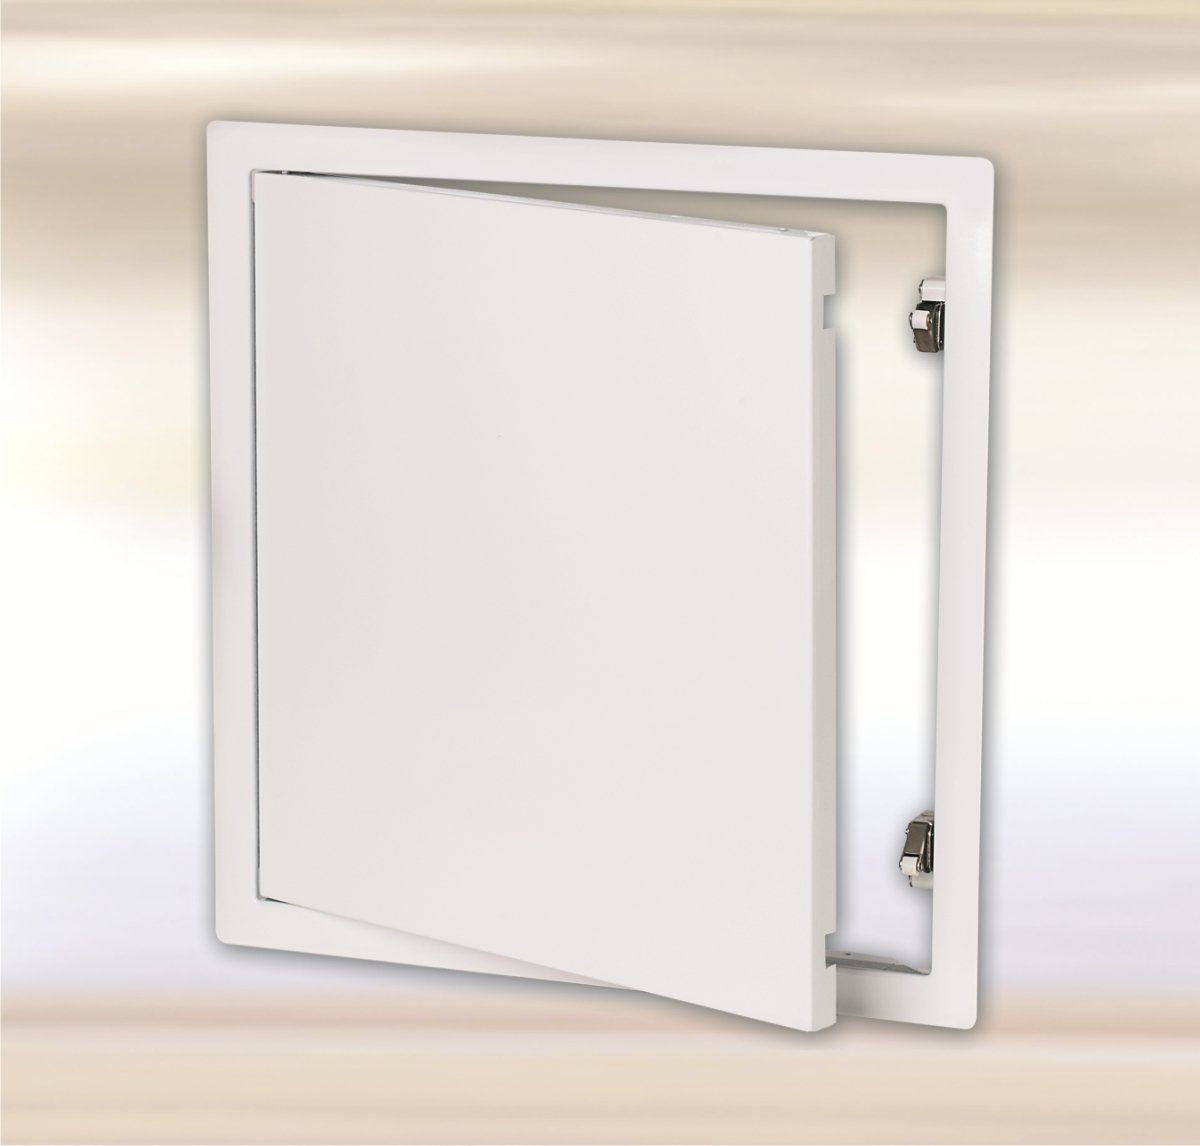 20 X 20 Metal B-series Access Door with touch latch for walls and ceilings